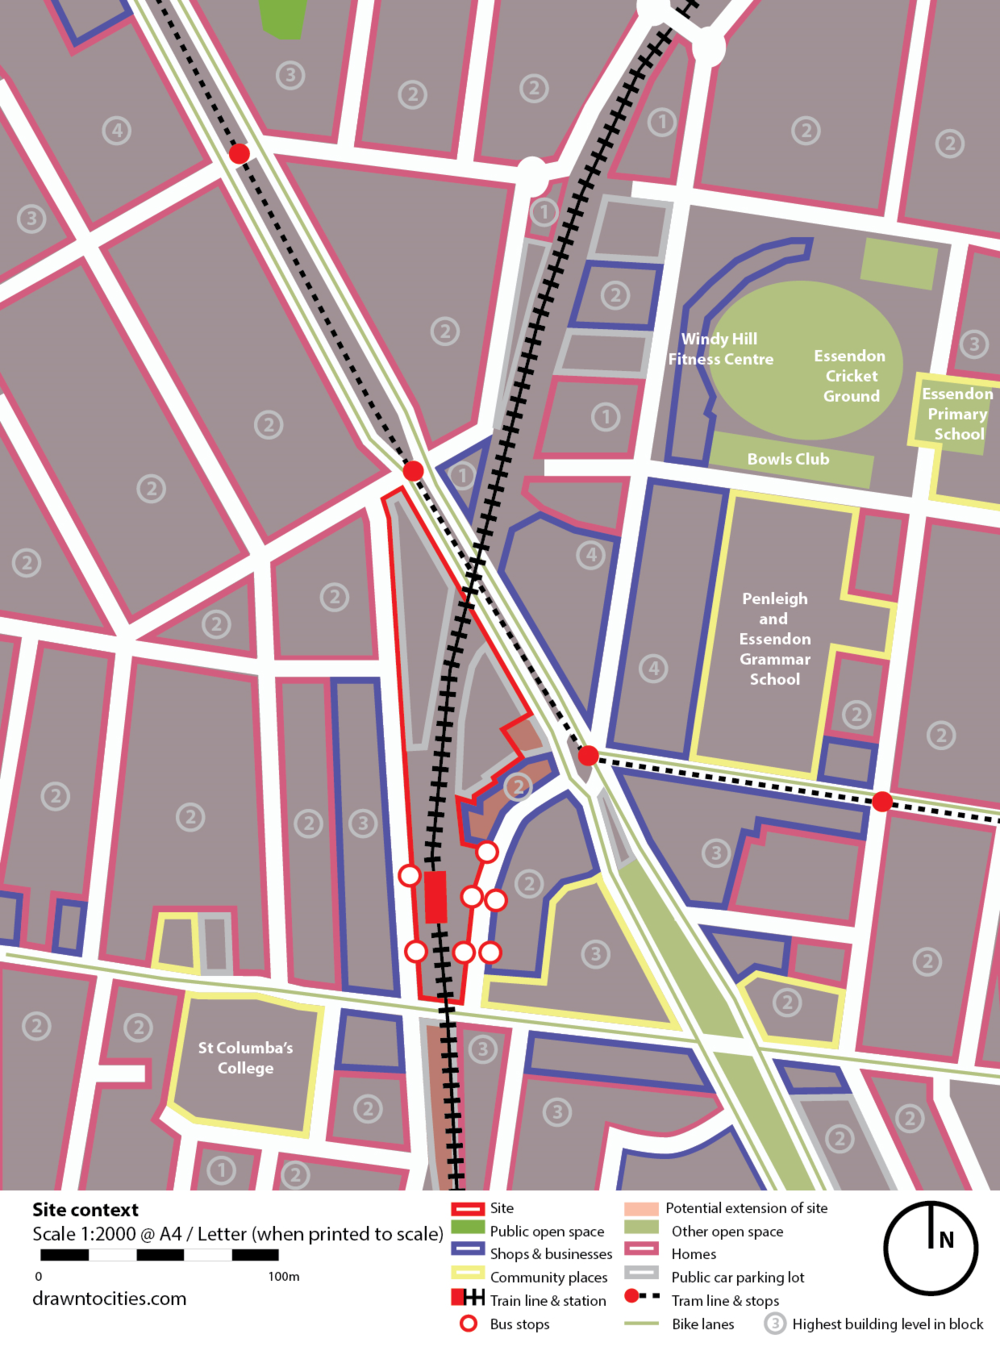 Essendon Station site context by Drawntocities.com